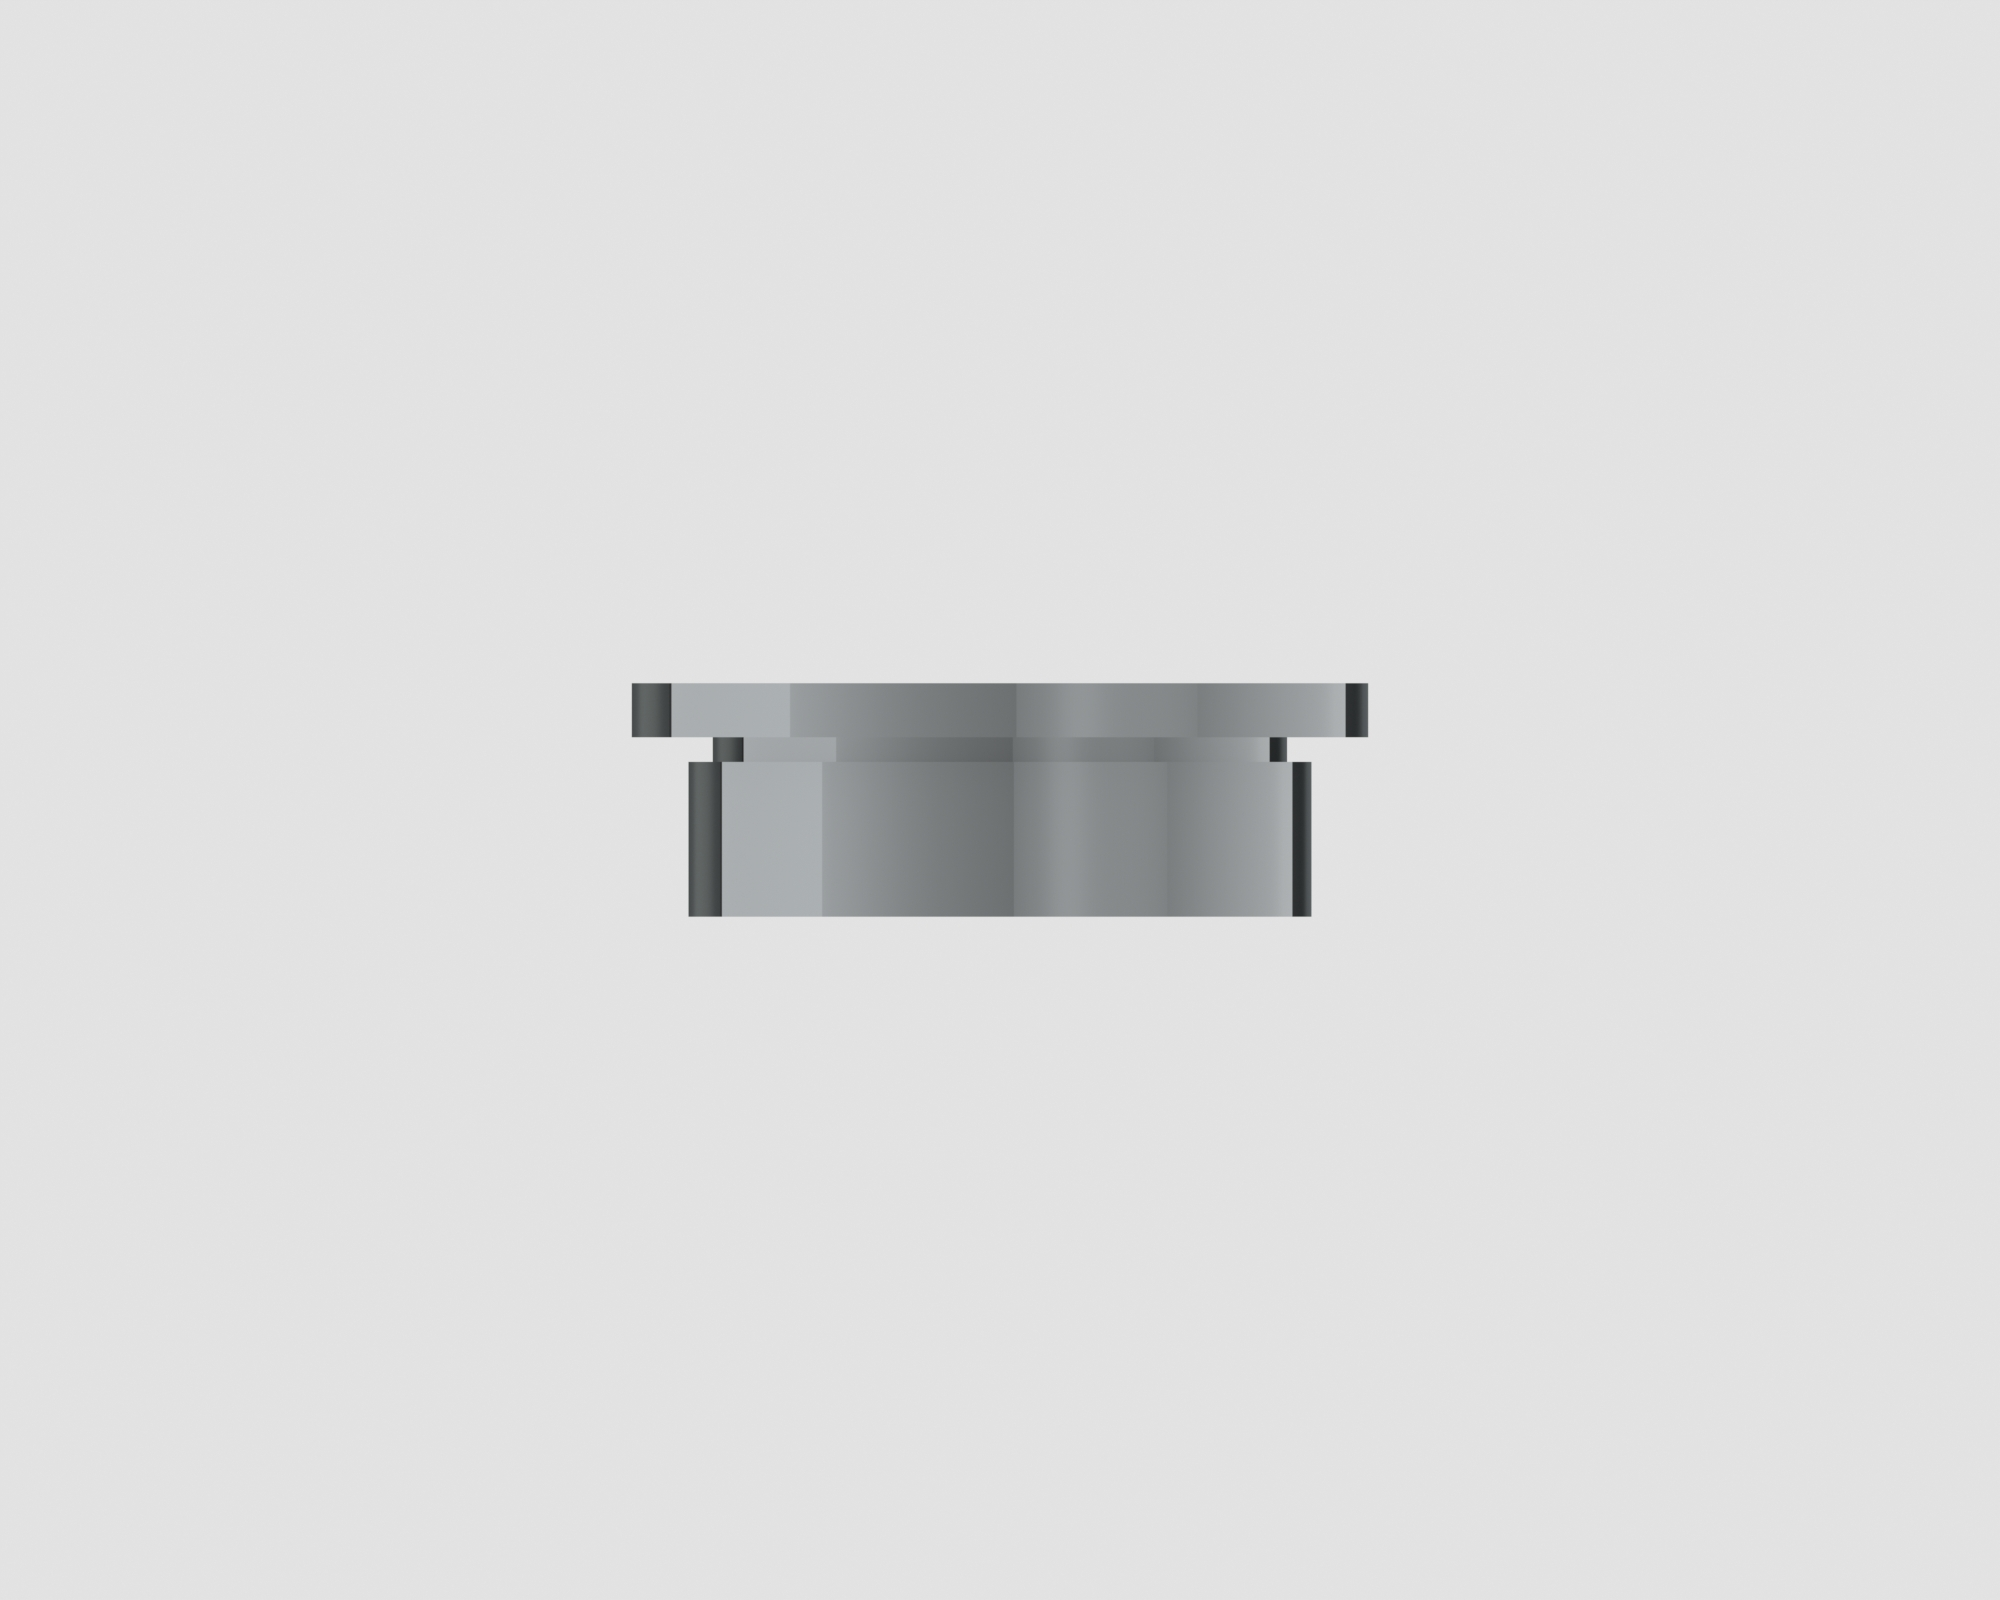 Midwest Shorty Thin Flange Turbine Bearing